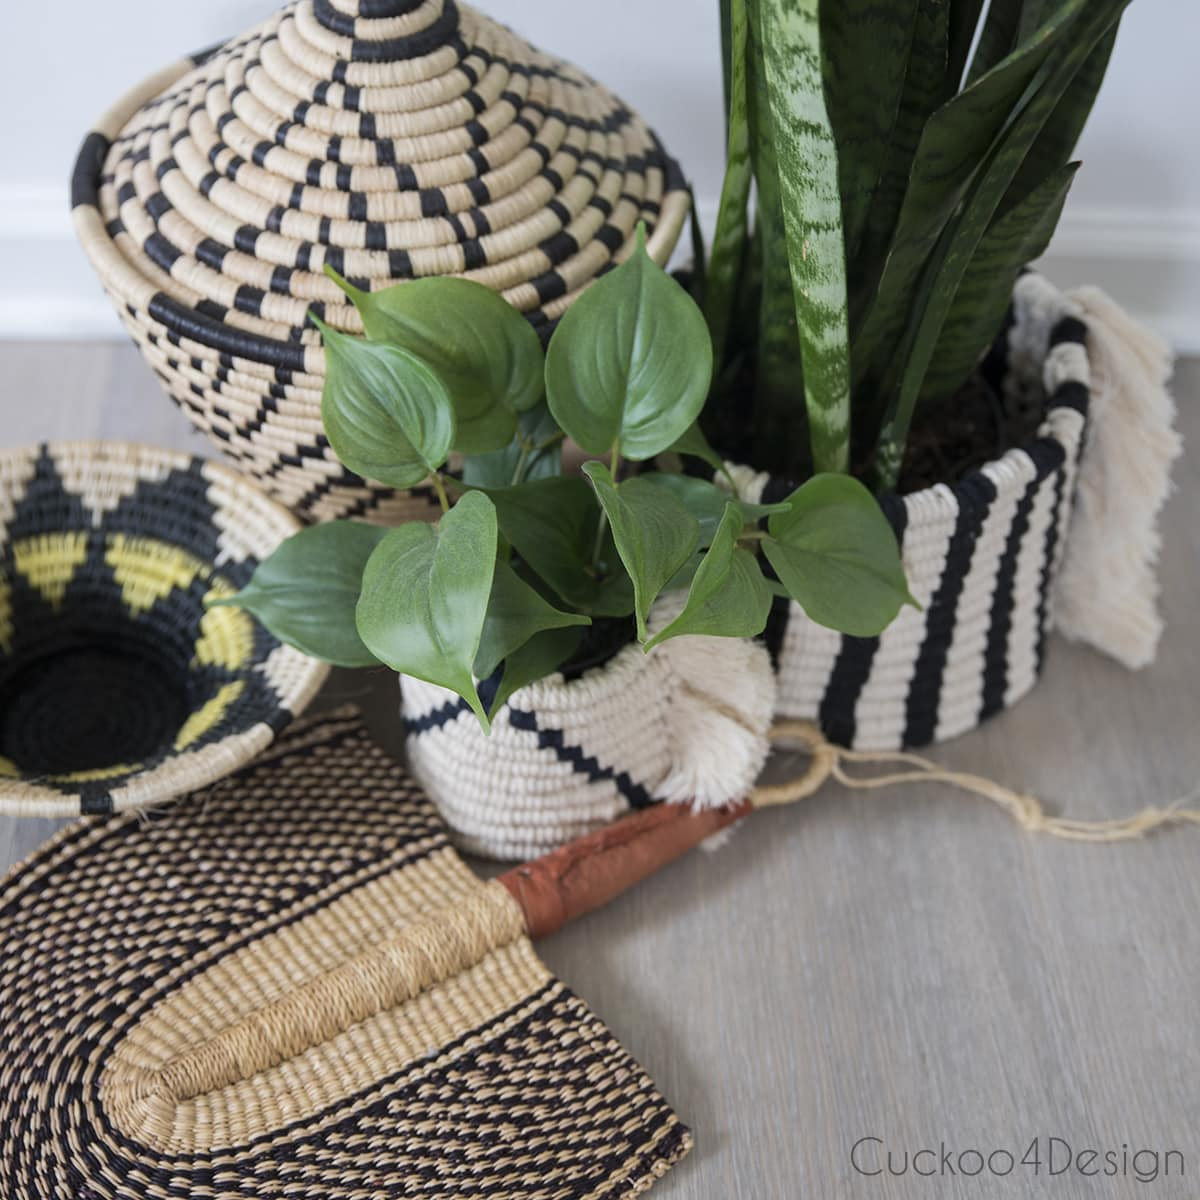 macrame planter sleeves inspired by black and white woven baskets